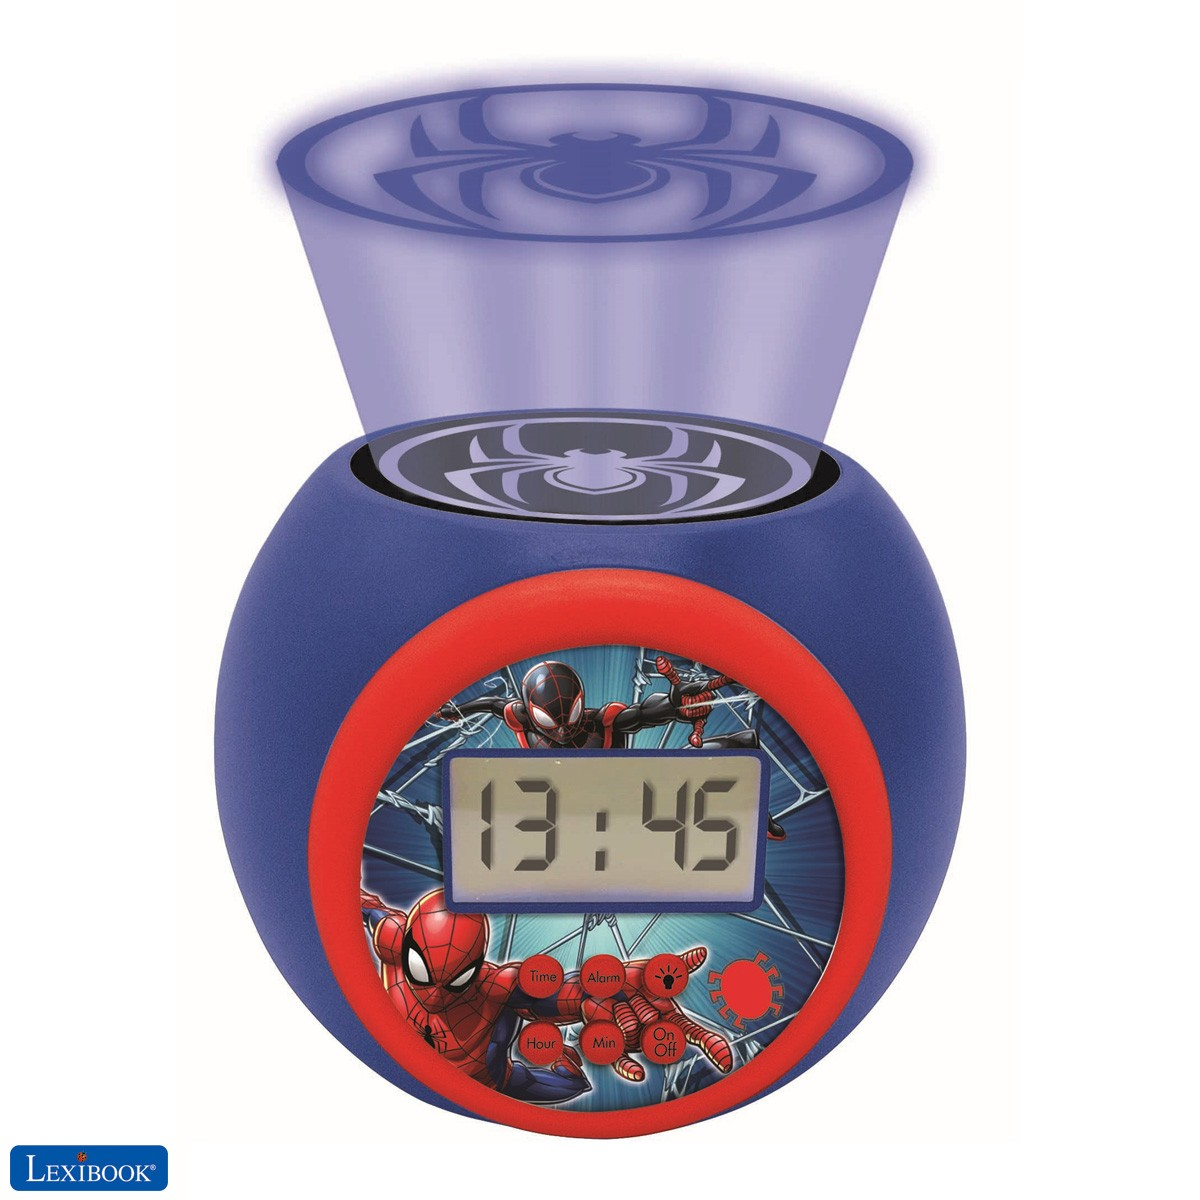 Projector Alarm Clock Spiderman Marvel with snooze function and alarm function